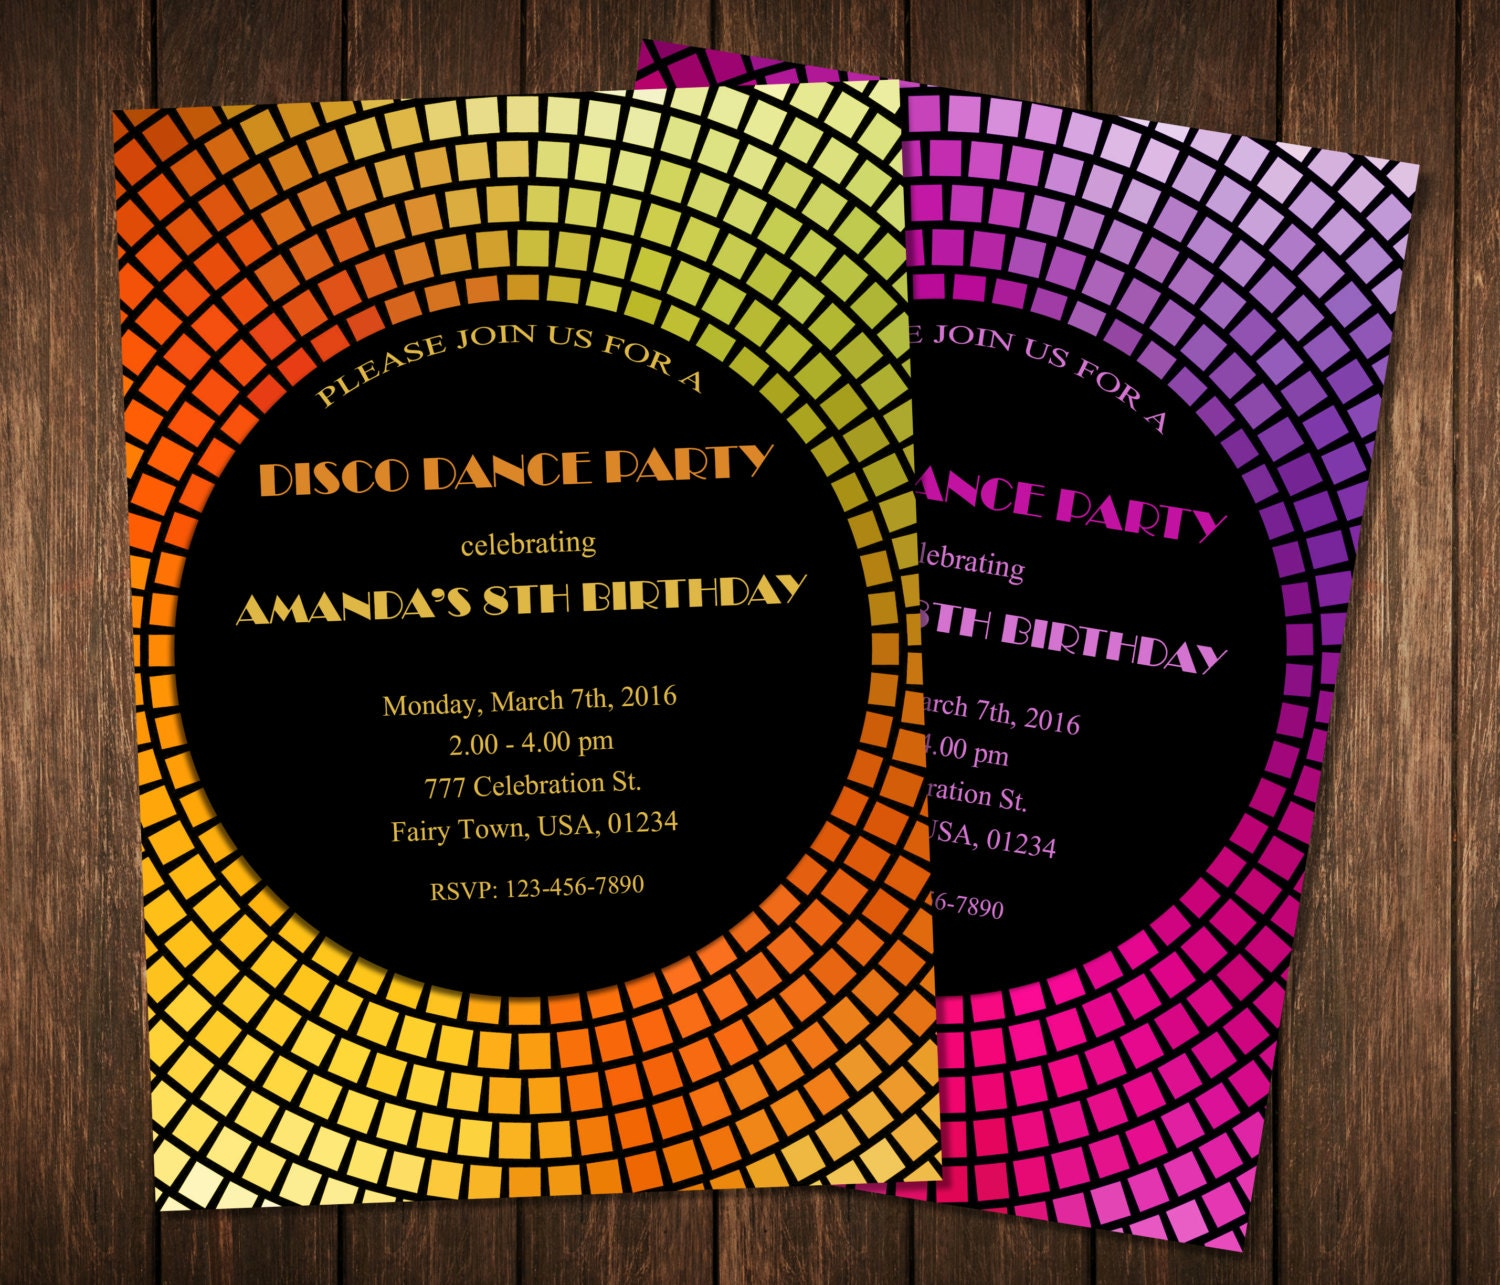 Dance Party Invitation Disco Dance Party Invitations Disco